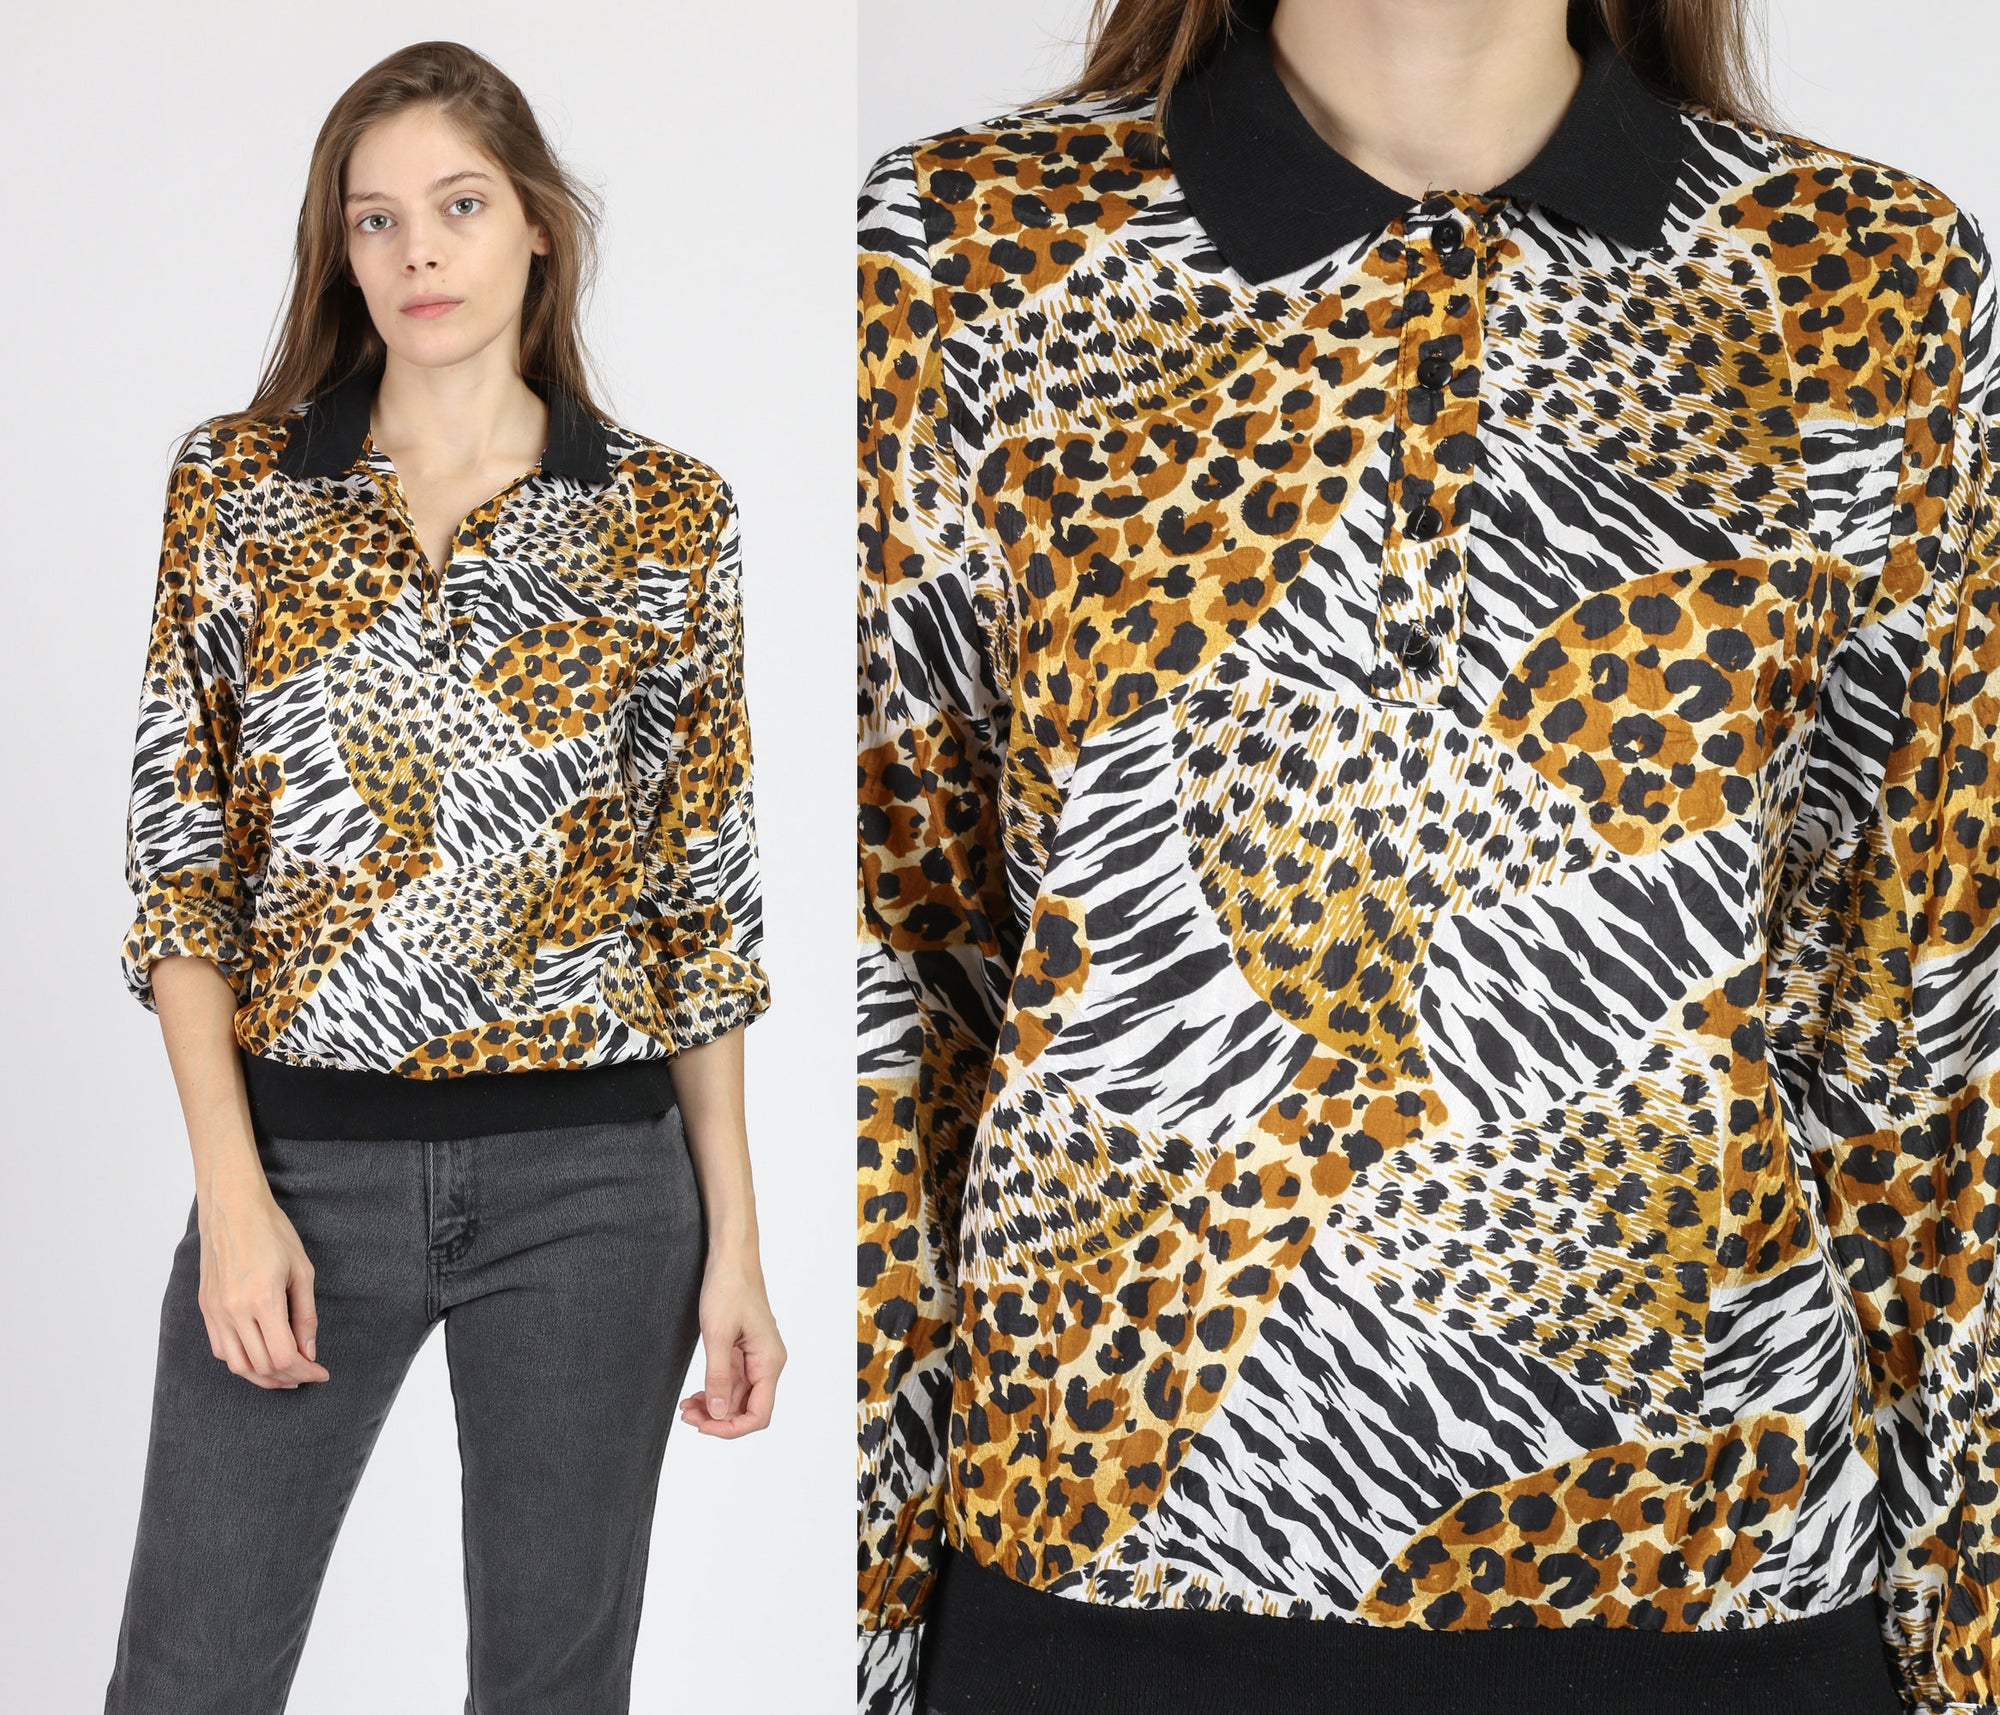 80s Animal Print Collared Top - Small